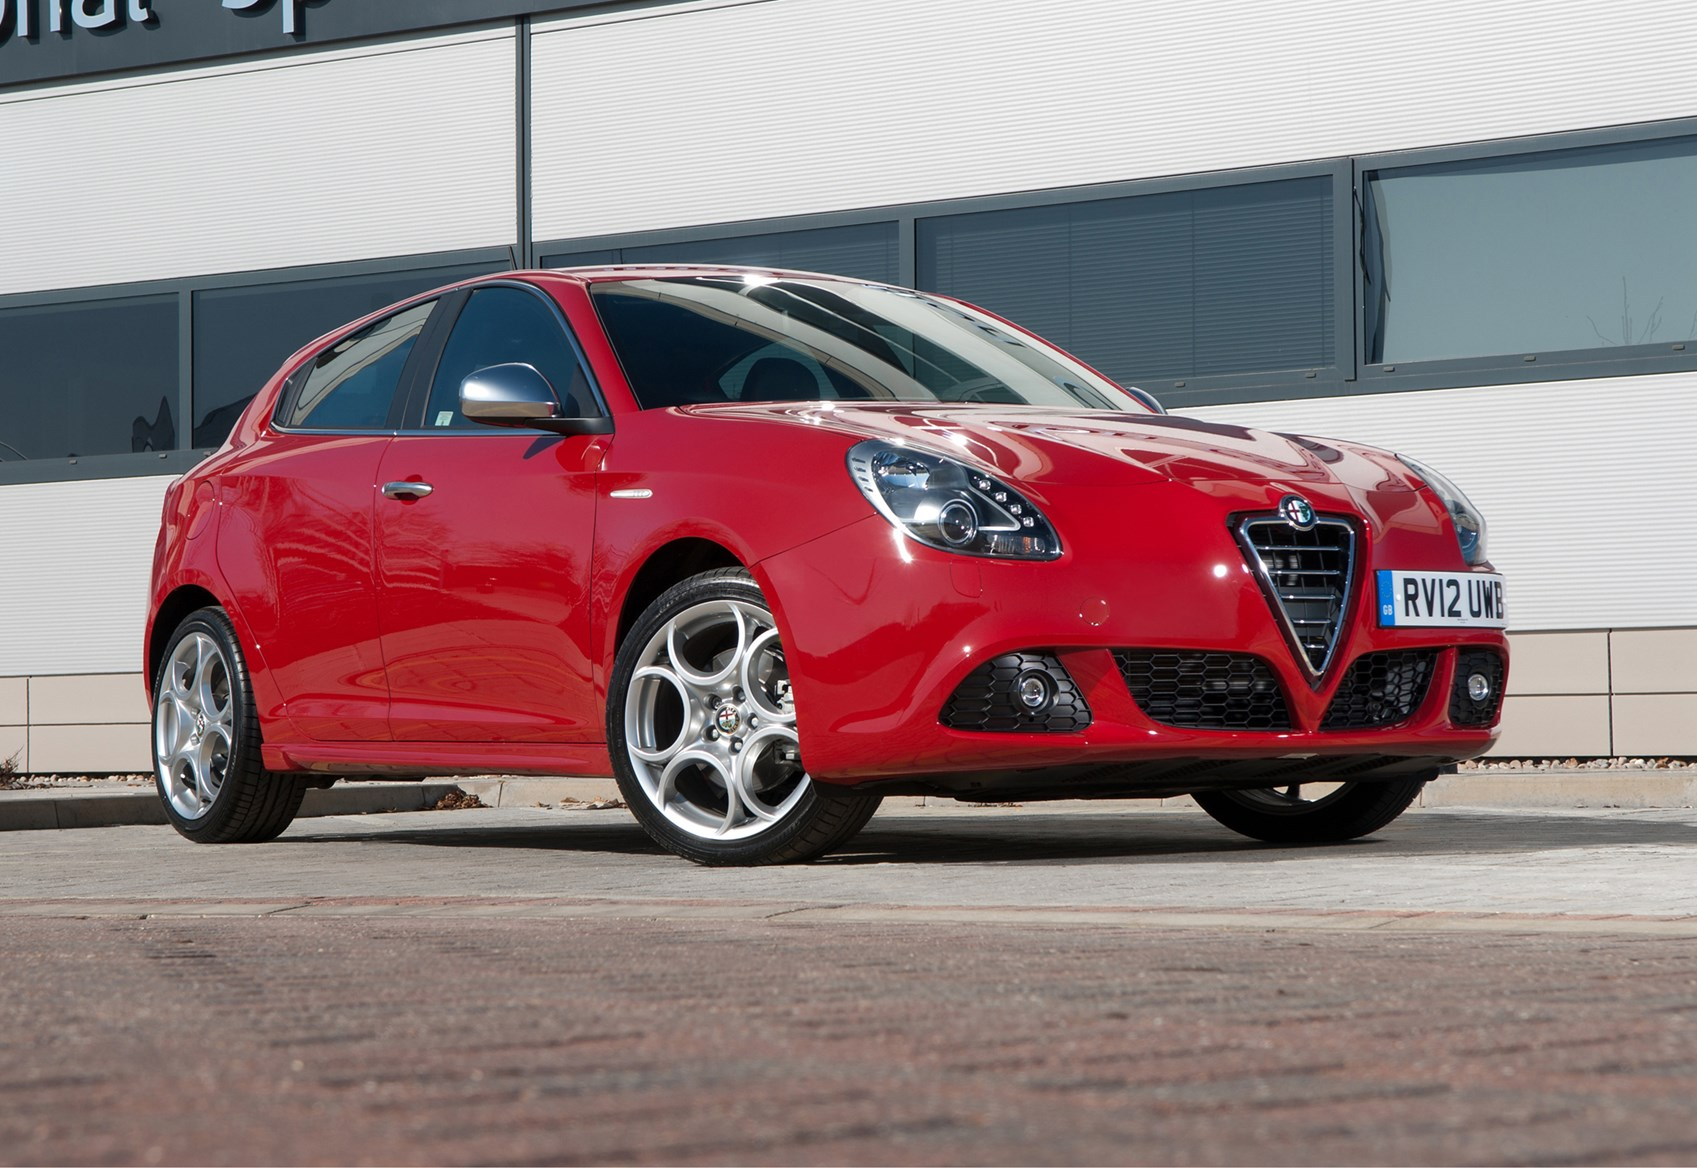 Alfa Romeo Giulietta Hatchback 2010 Features Equipment And Tv Led Mito 17 Accessories Parkers